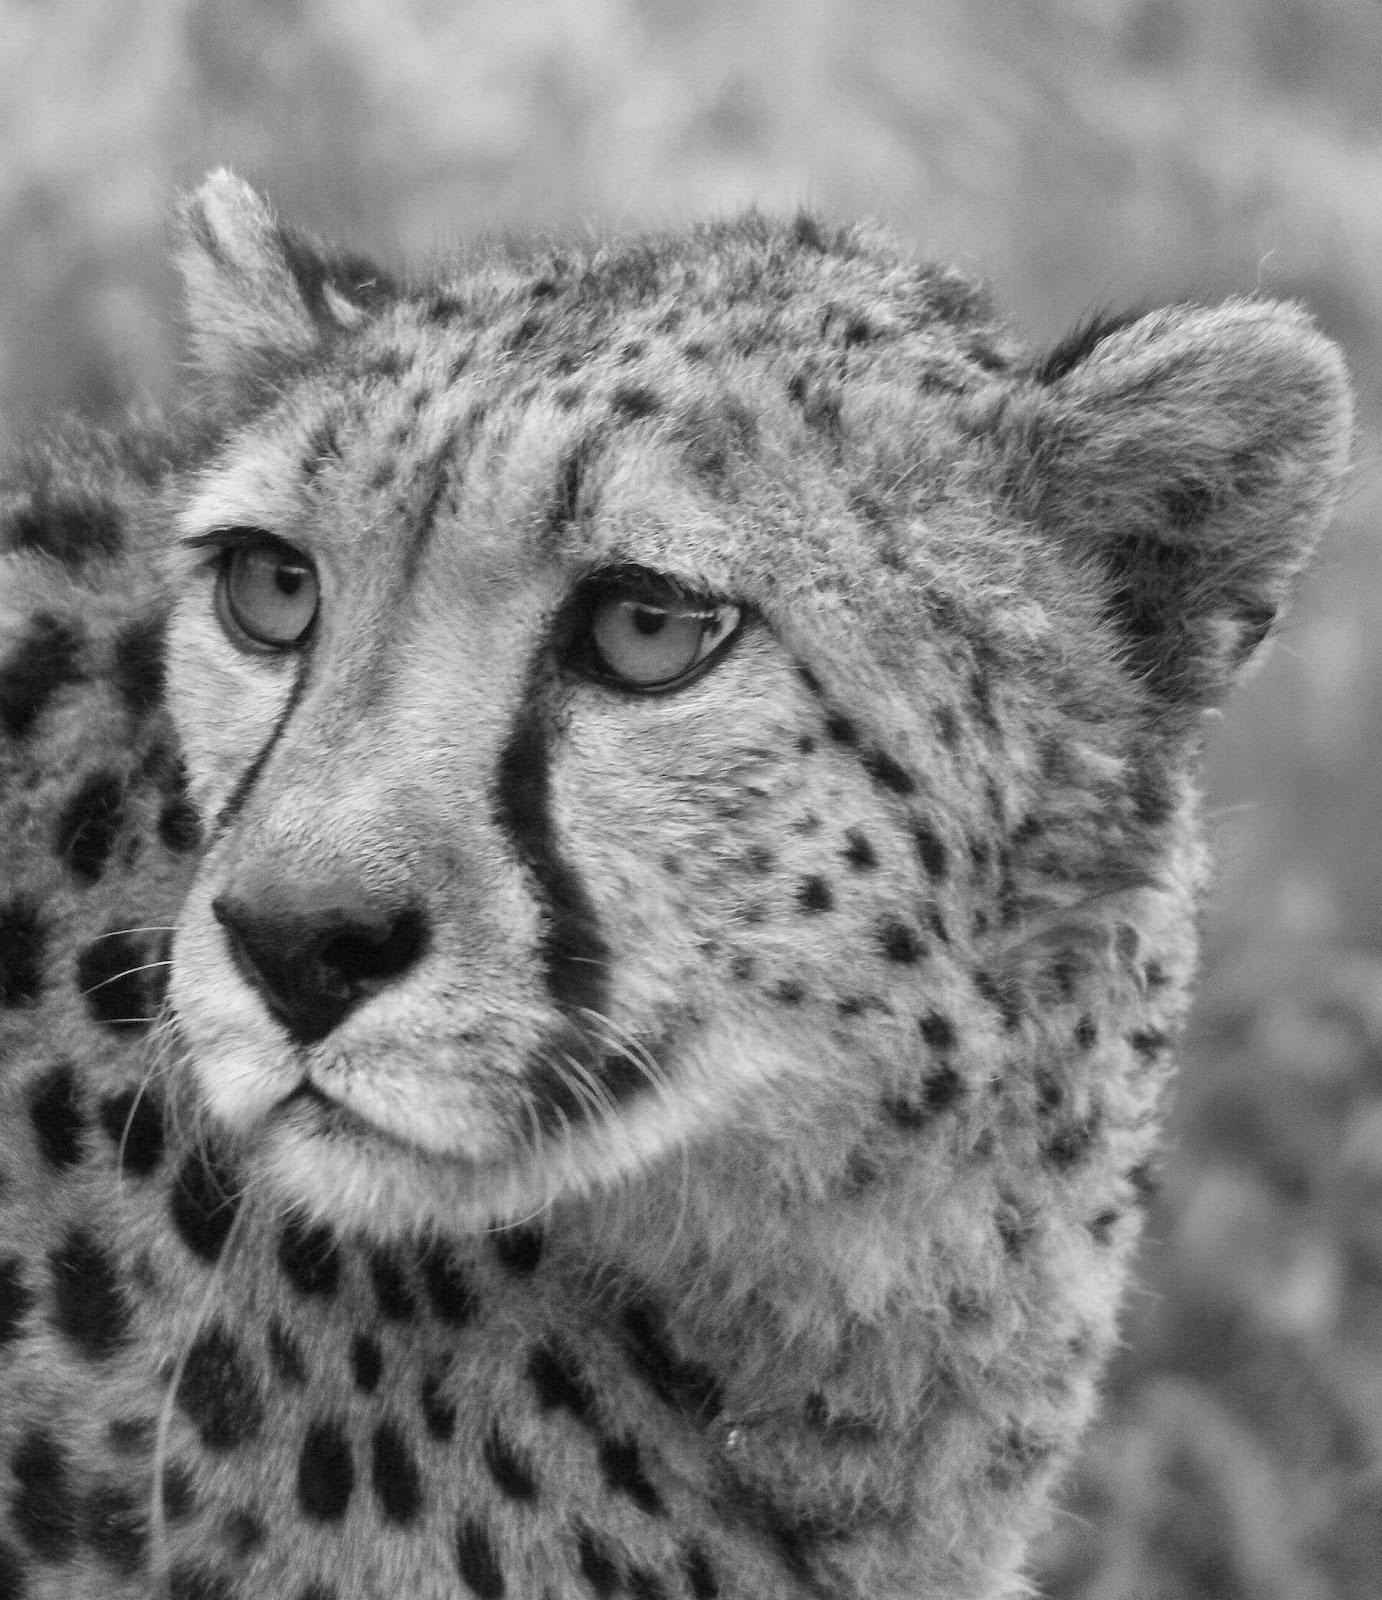 12-Cheetah-Hyper-Realistic-Wildlife-Peter-Williams-www-designstack-co